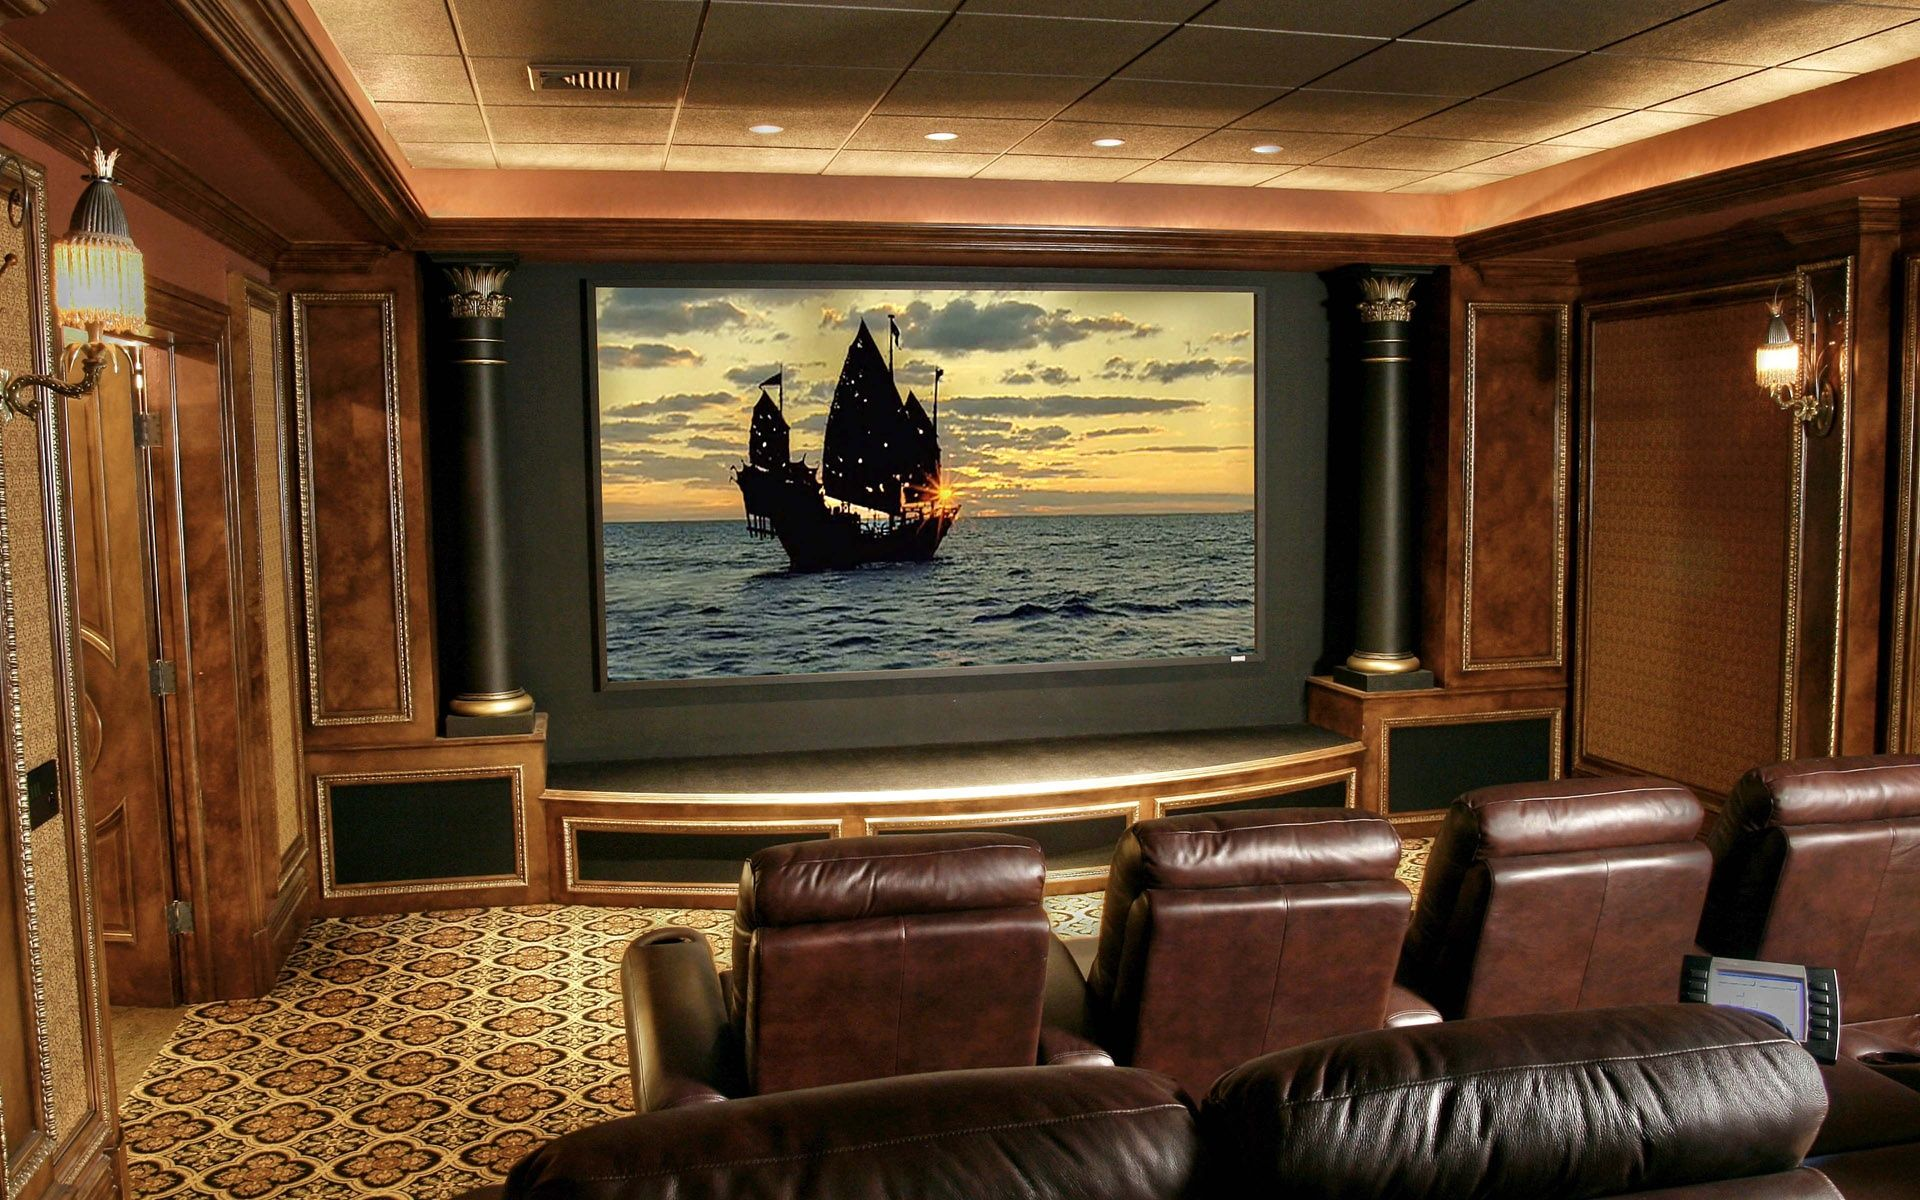 Best Images About Home Theater  Arcade On Pinterest Theater - Designing home theater